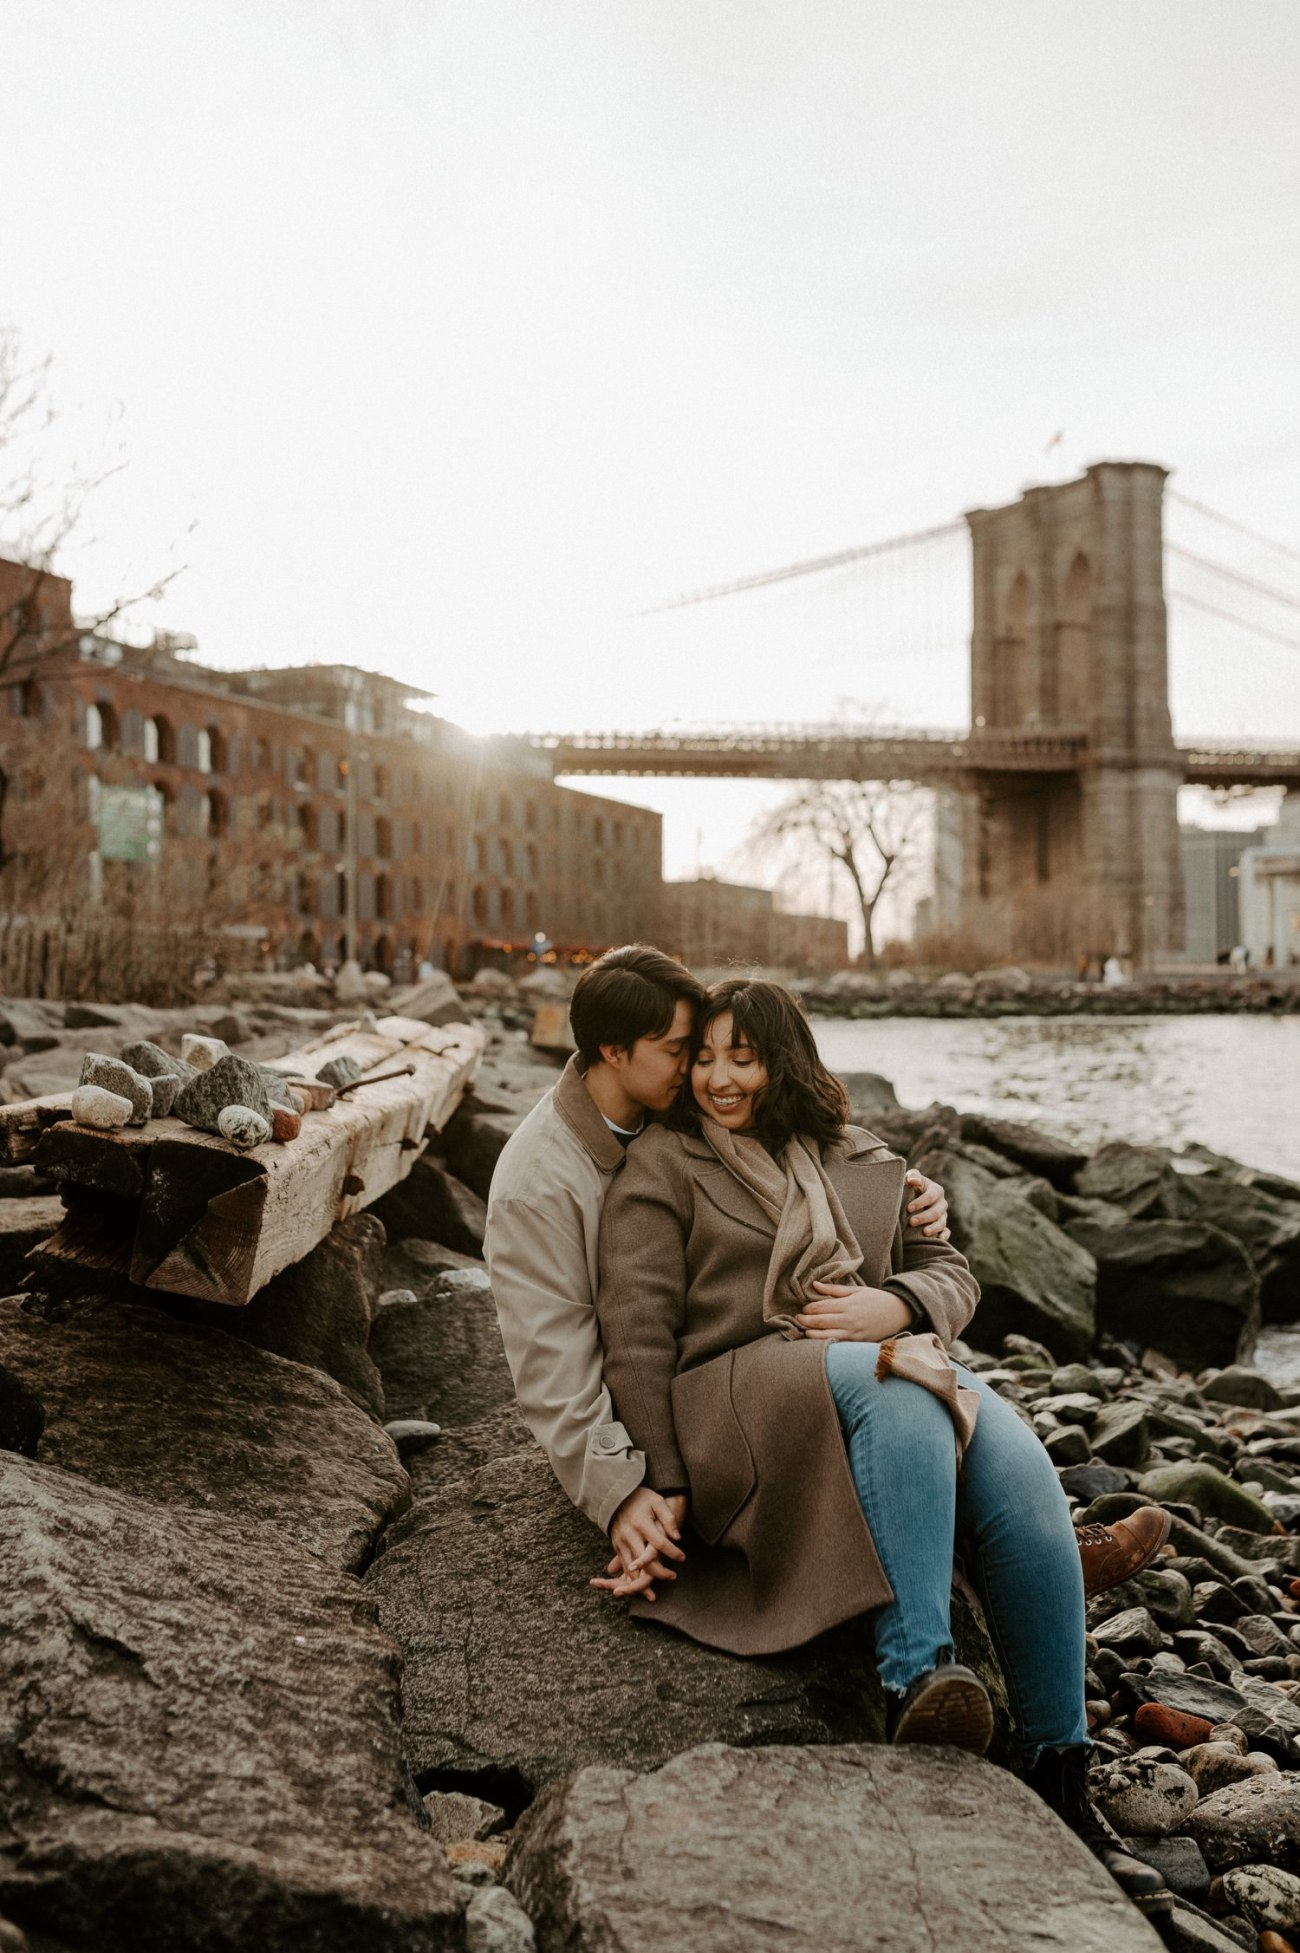 Dumbo Brooklyn Engagement Photos New York City Couple Session New York Wedding Photographer NYC Best Engagement Photos Location Anais Possamai Photography 35